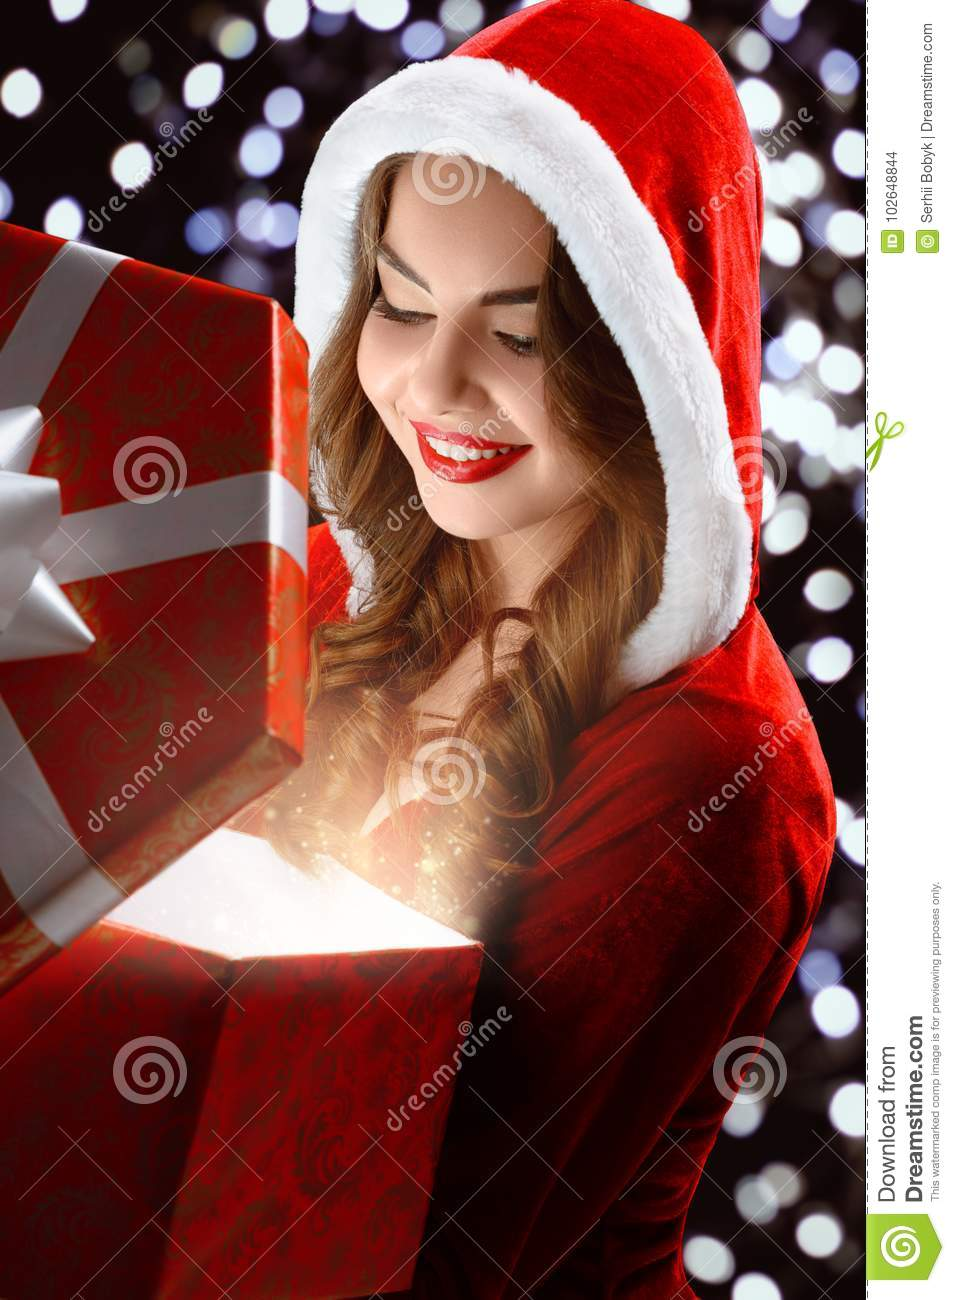 Smiling Snow Maiden In Red Suit Opens A Gift For New Year 2018,2019 ...